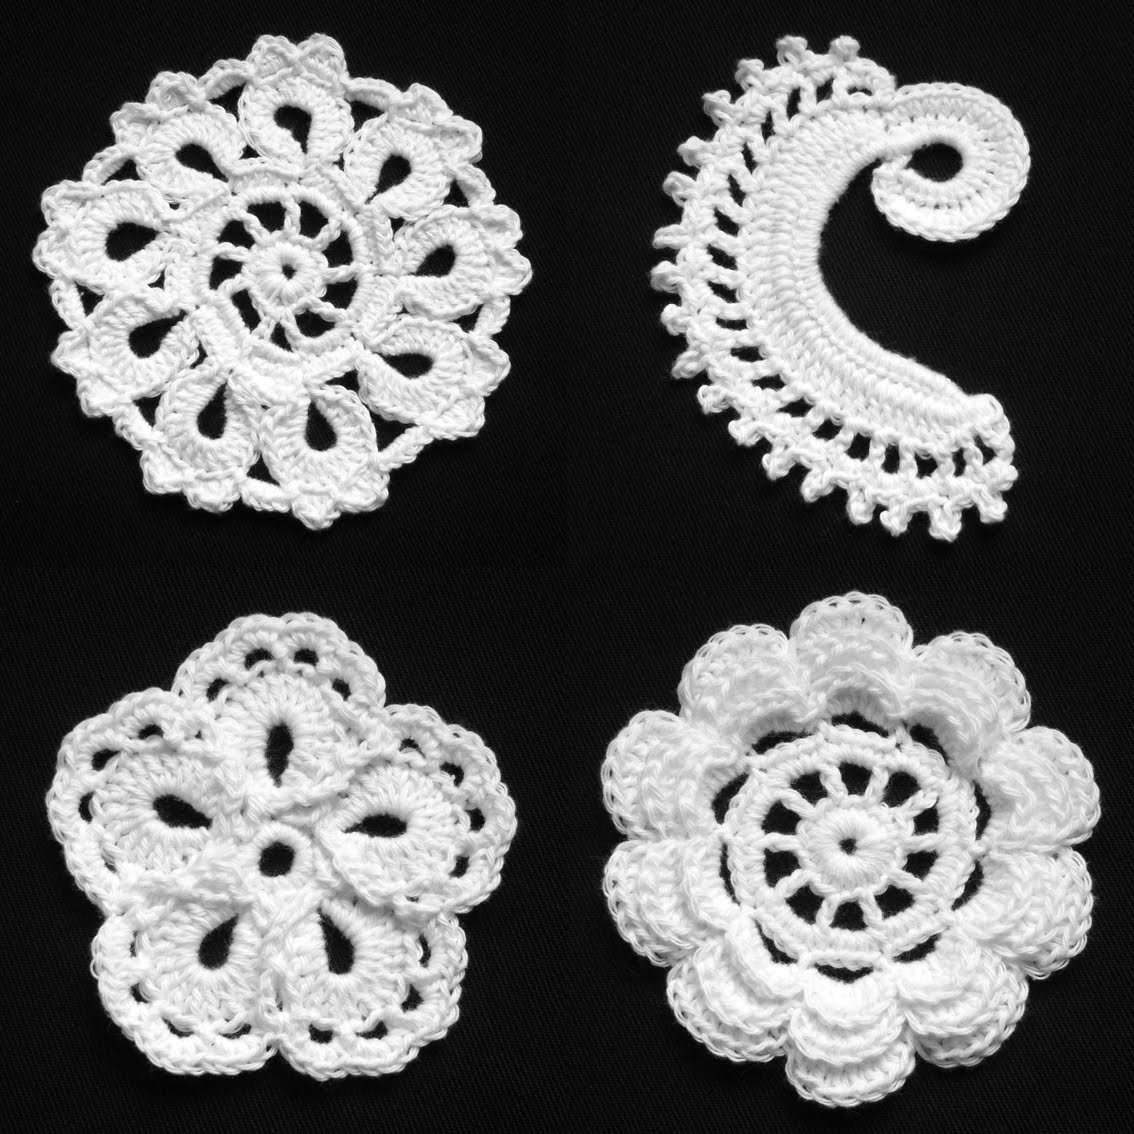 FREE IRISH CROCHET WEDDING LACE PATTERNS Crochet Tutorials